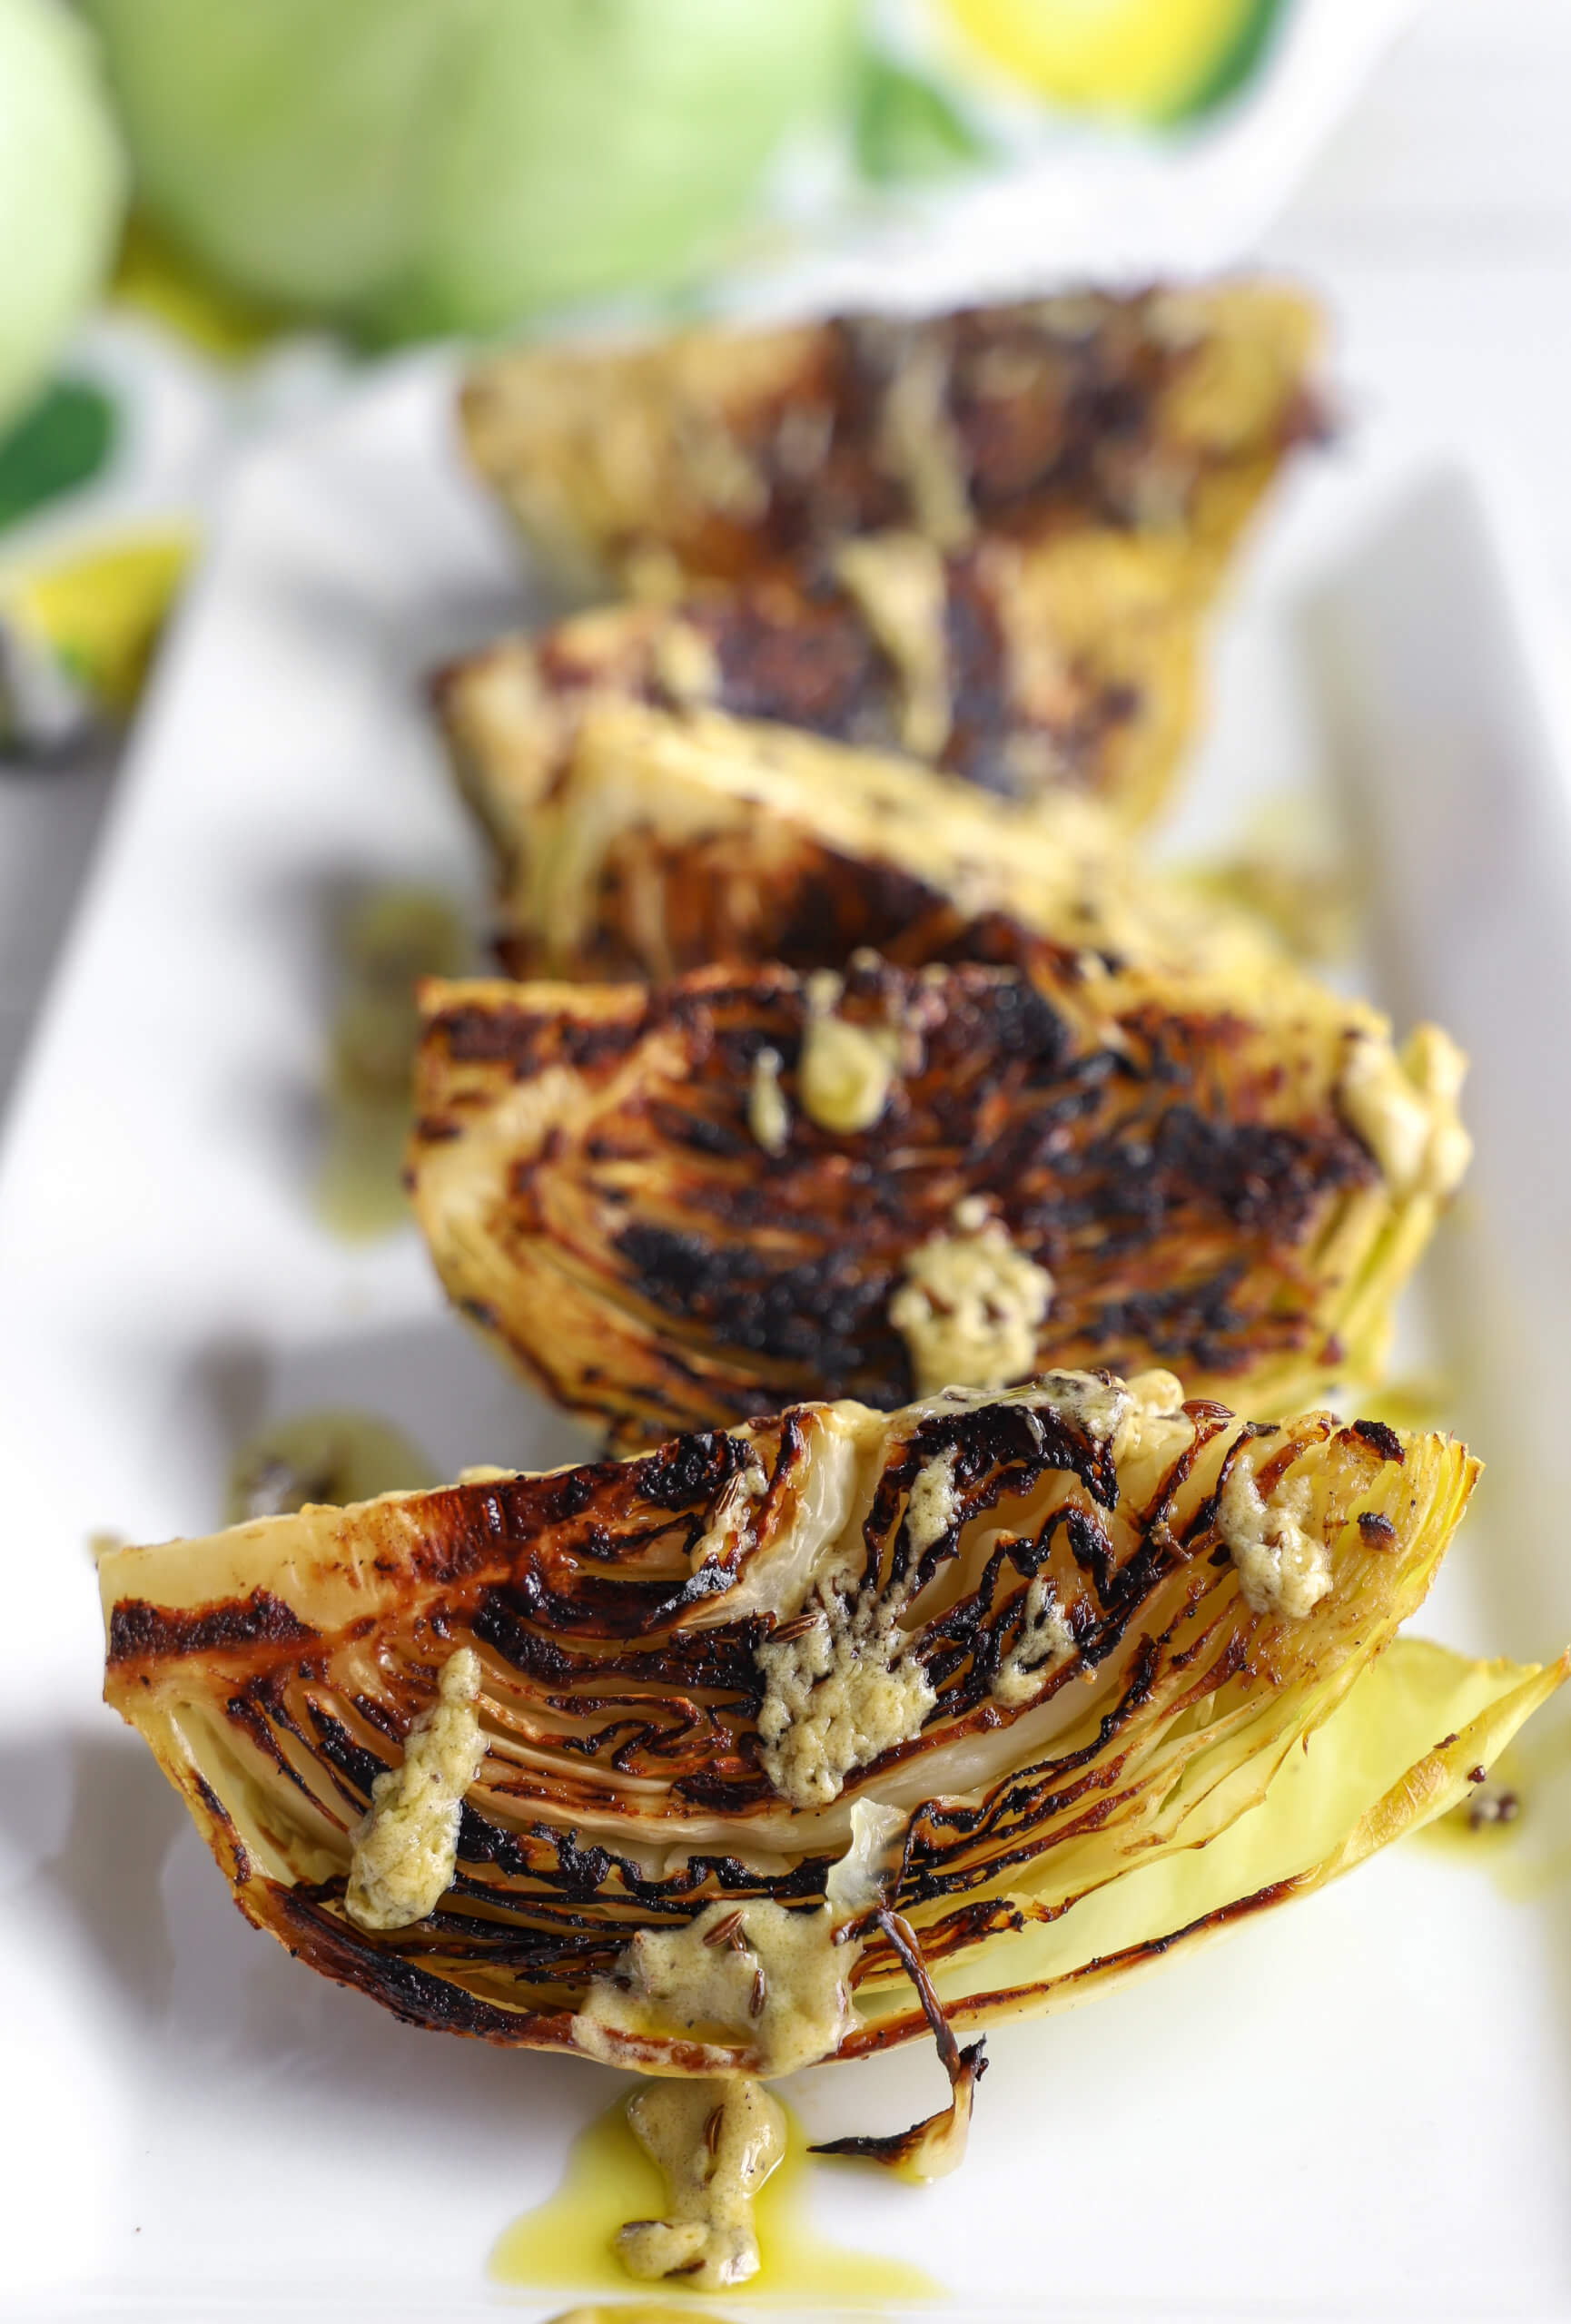 Dijon Roasted Cabbage Wedges with Caraway Seeds